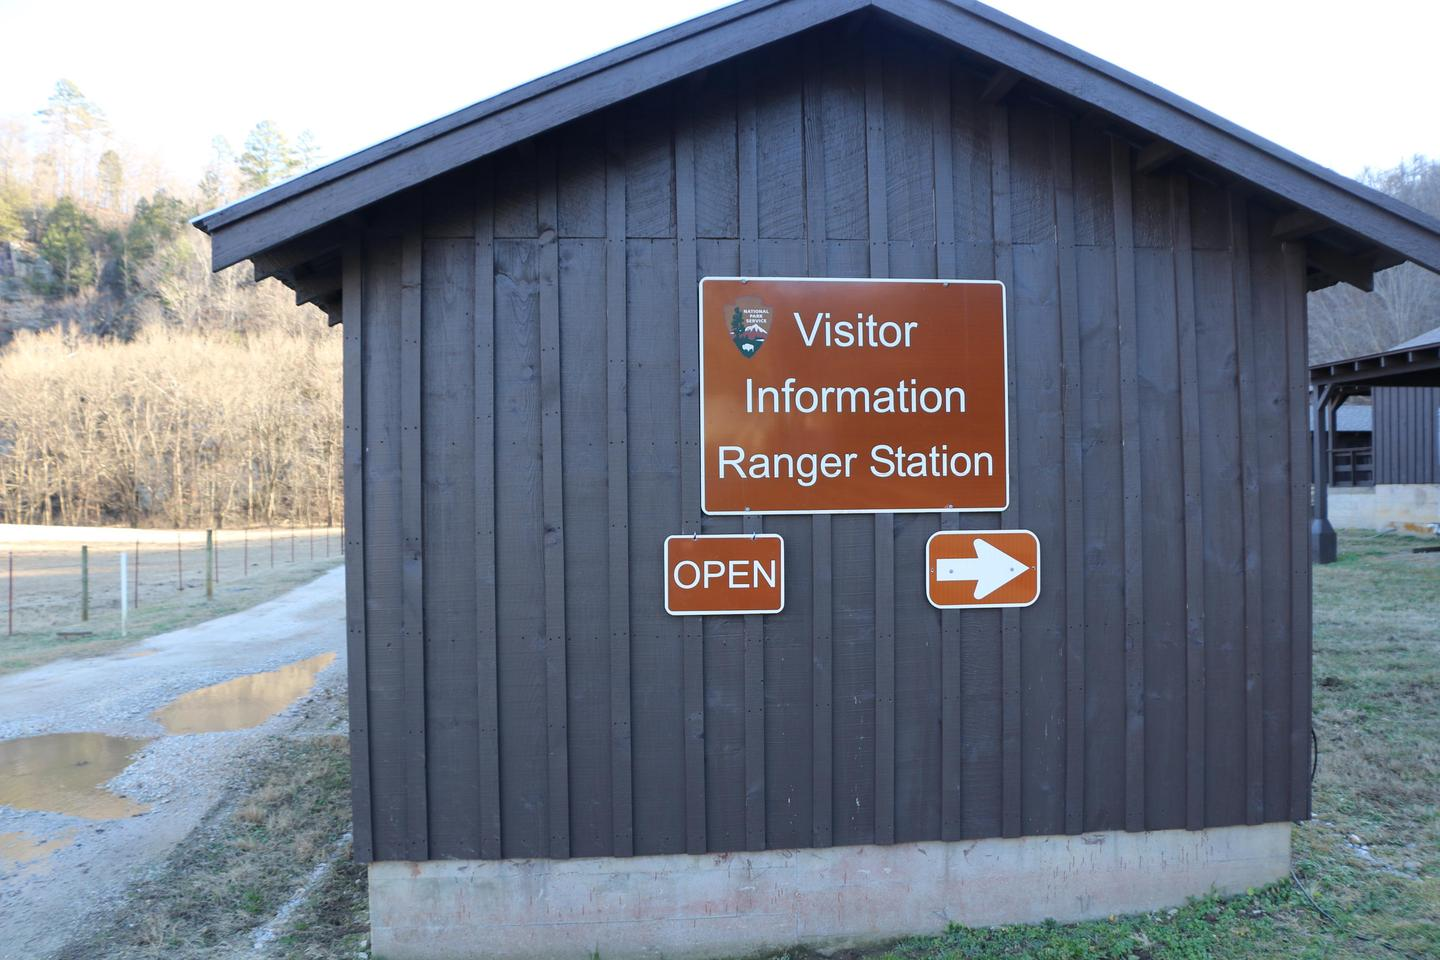 Steel Creek Ranger StationThe Steel Creek Ranger Station is open seasonally so it is best to call ahead if you are planning to visit.